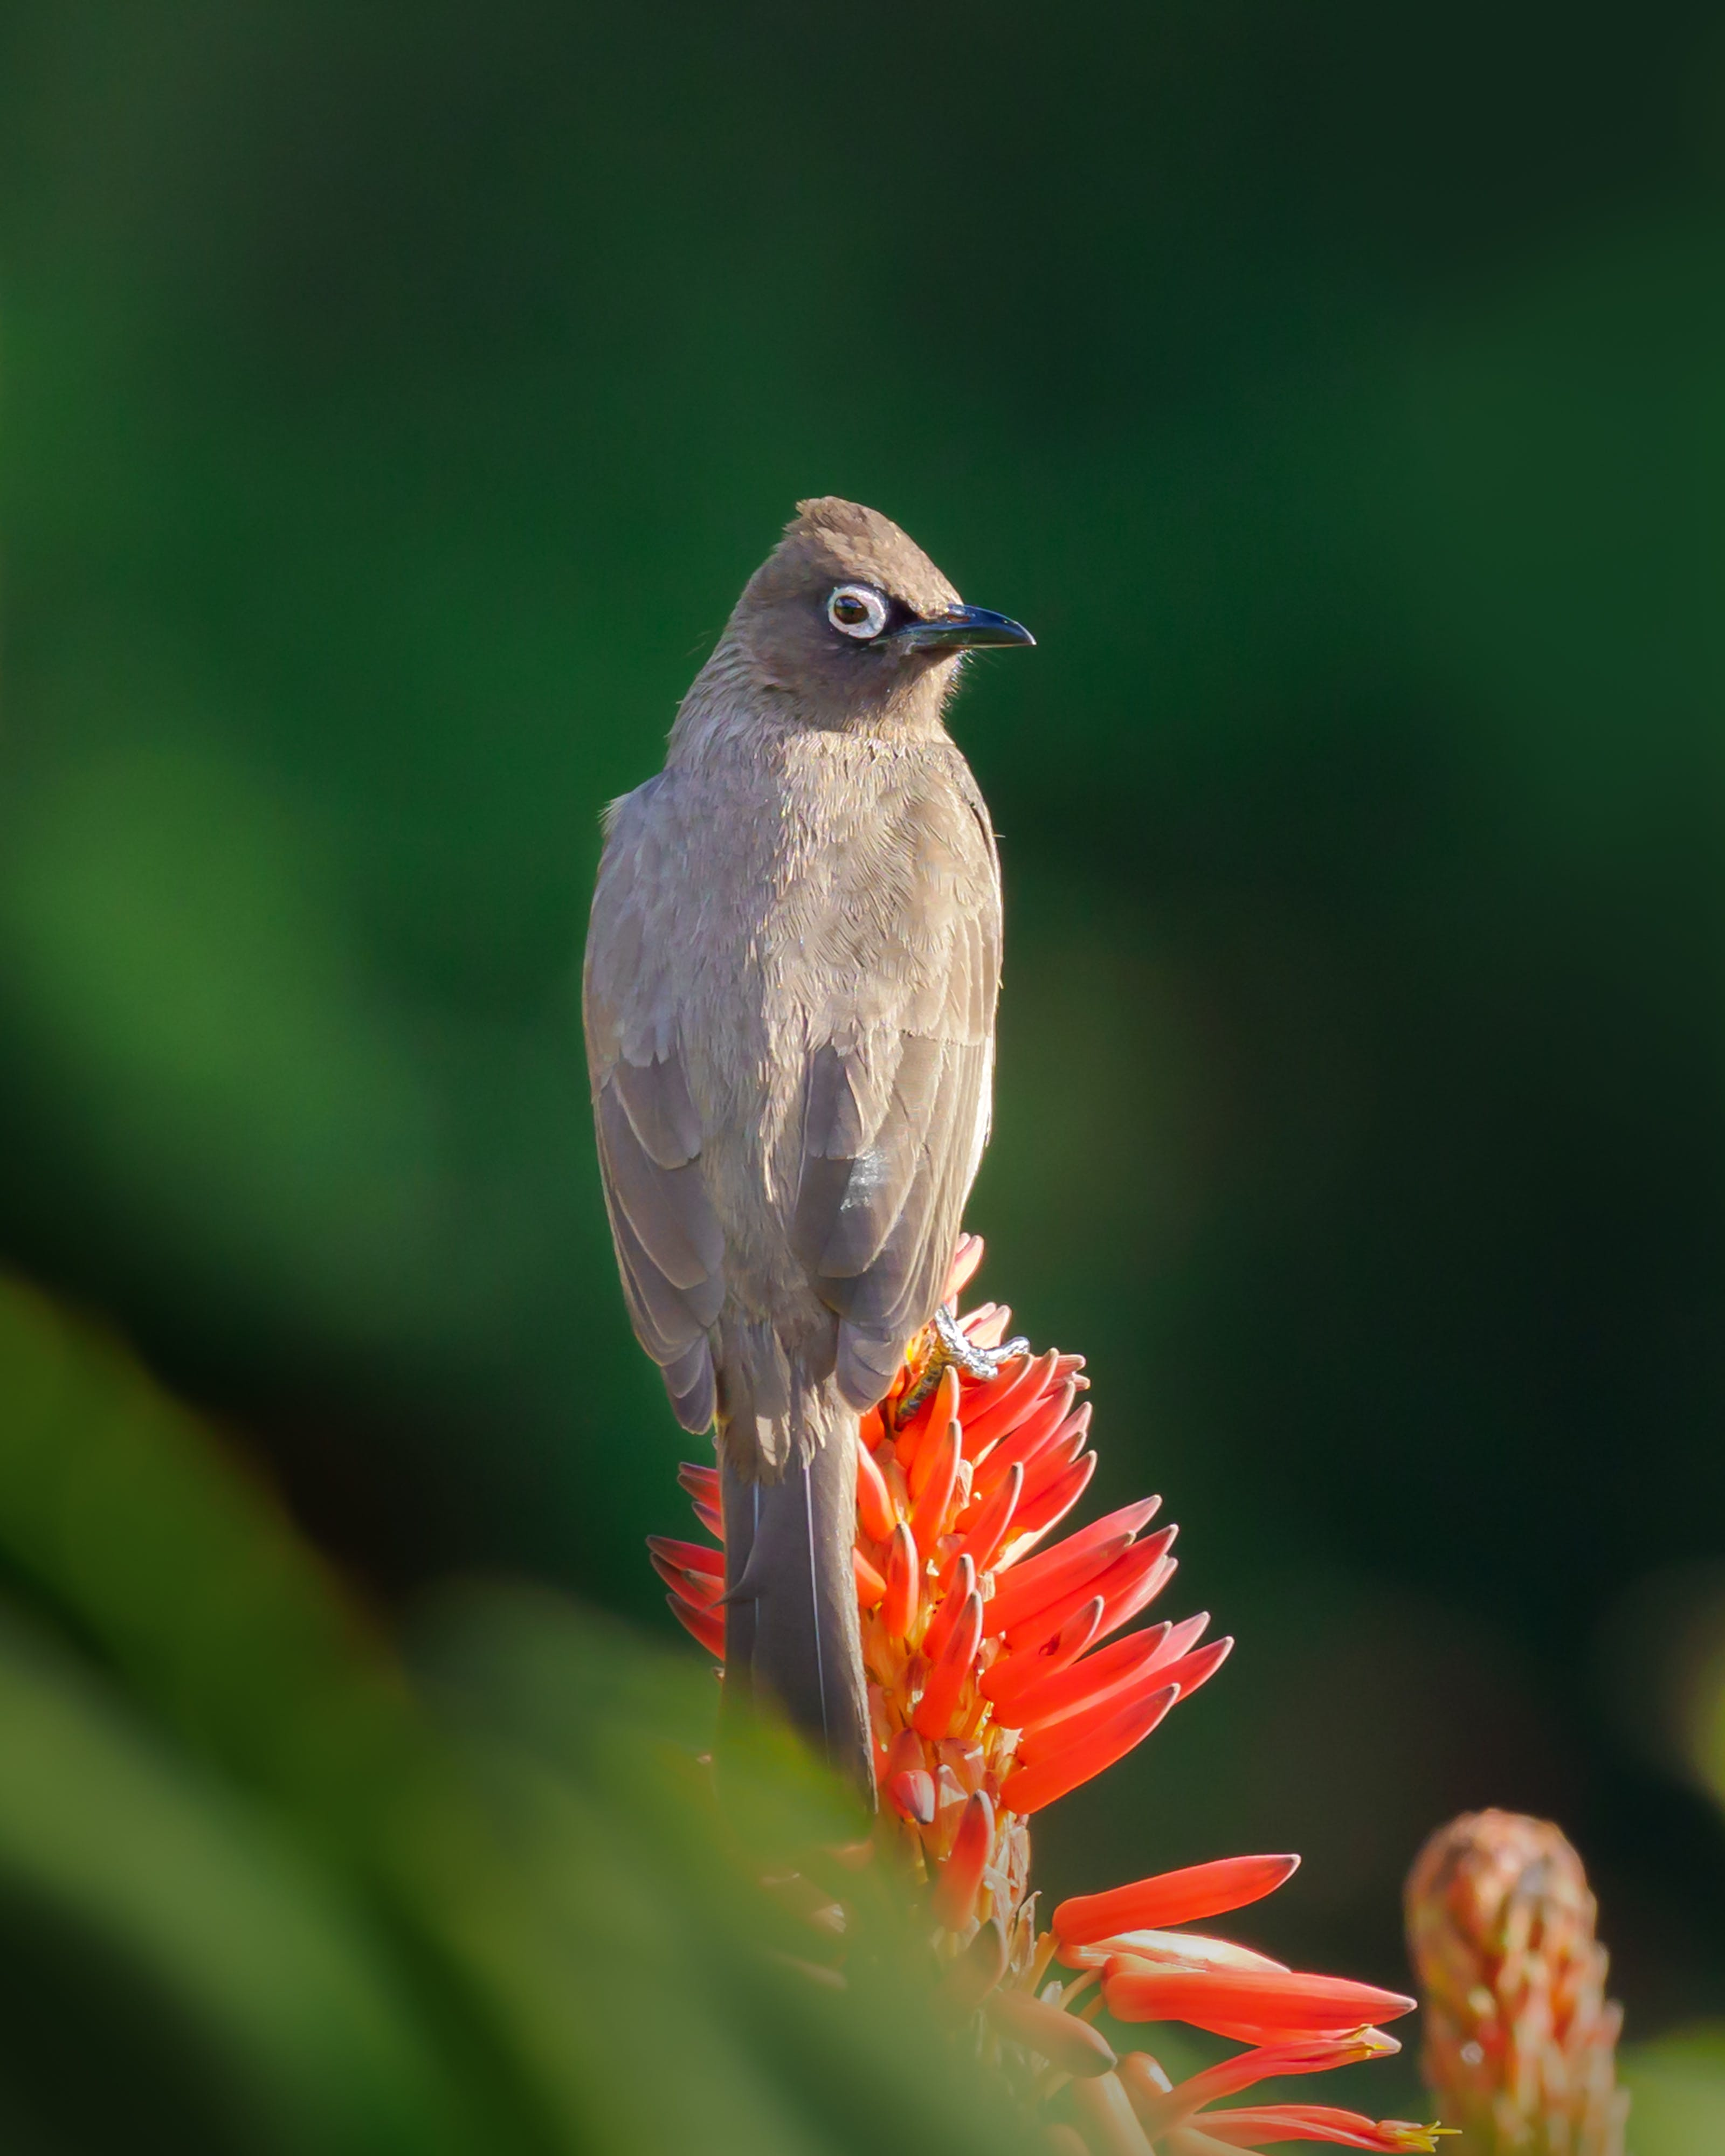 Brown Bird Perched on Red Flower